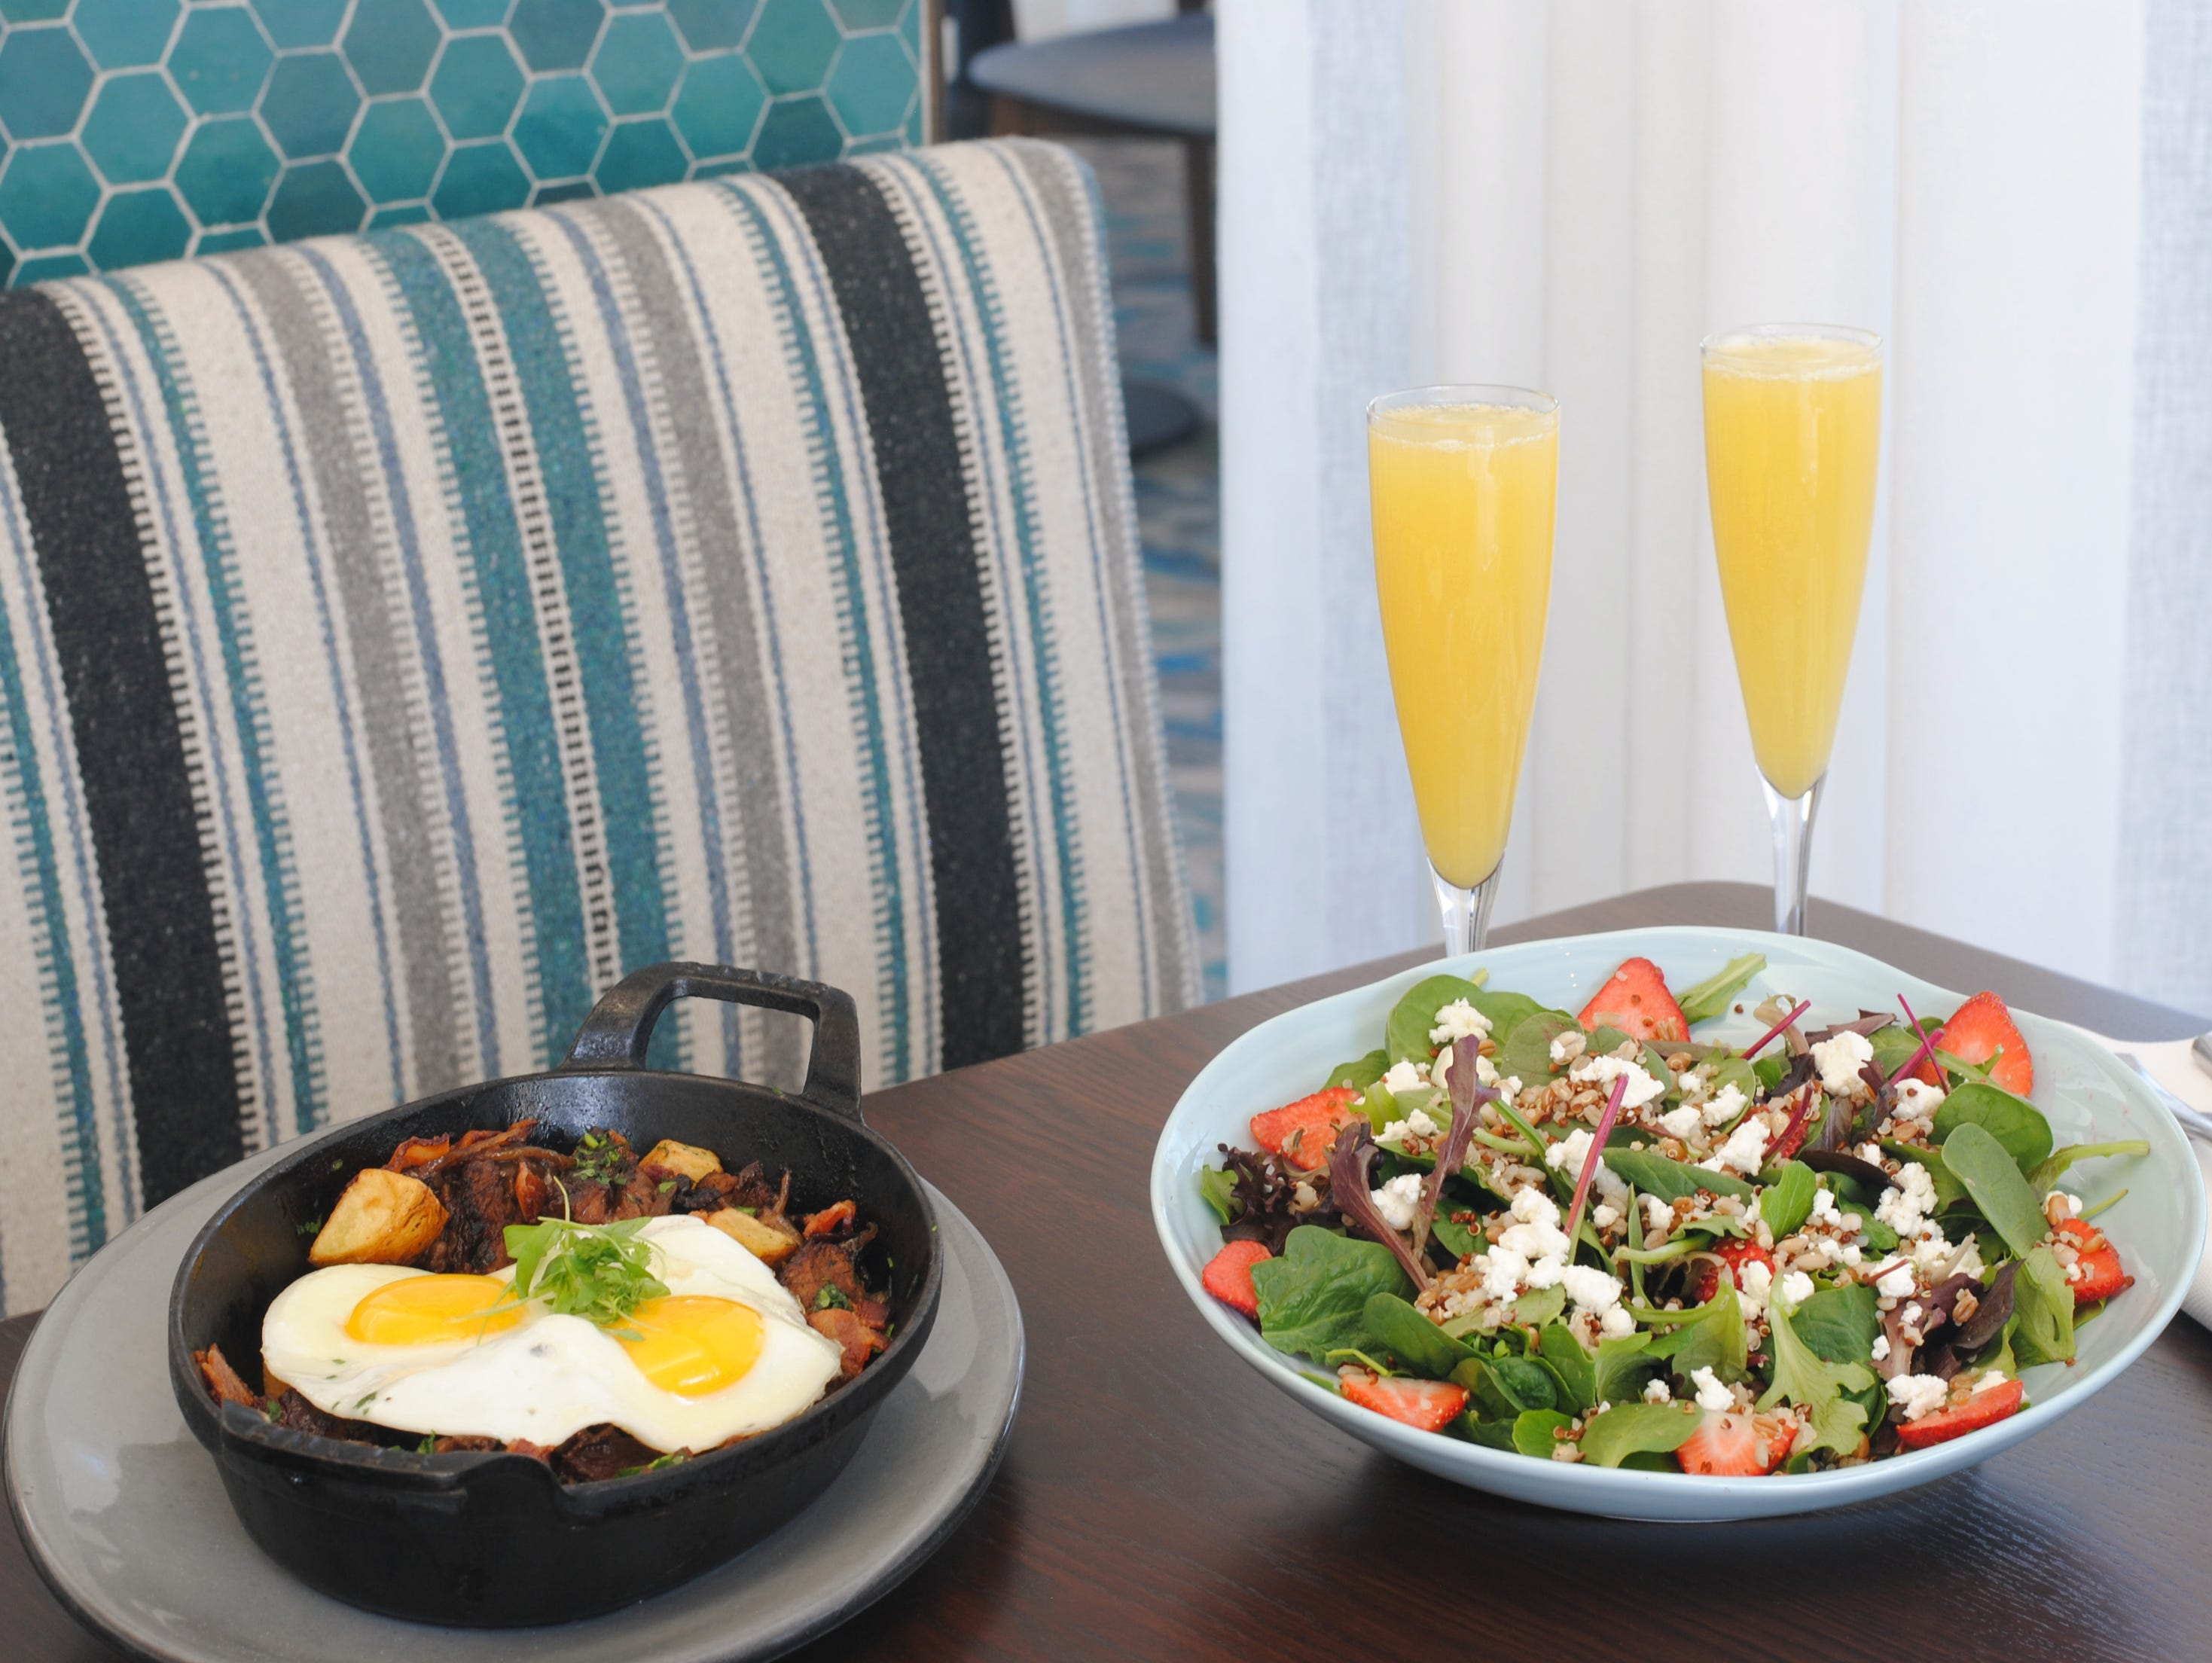 HEARTH '61, MOUNTAIN SHADOWS | A three-course brunch ($79, $19 for ages 12 and younger) will be served 9 a.m.- 2 p.m. and kicksoff with an antipasti buffet featuring seafood, salads, a prime rib carving board and omelet station. Entrée options include wood-oven roasted New York striploin, crab cake Benedict, Two Wash Ranch organic chicken, pan-seared Ora king salmon and slow-braised beef short rib hash. A dessert table finishes the meal. Reservations required. DETAILS: 5445 E. Lincoln Drive, Paradise Valley. 480-624-5400, mountainshadows.com.